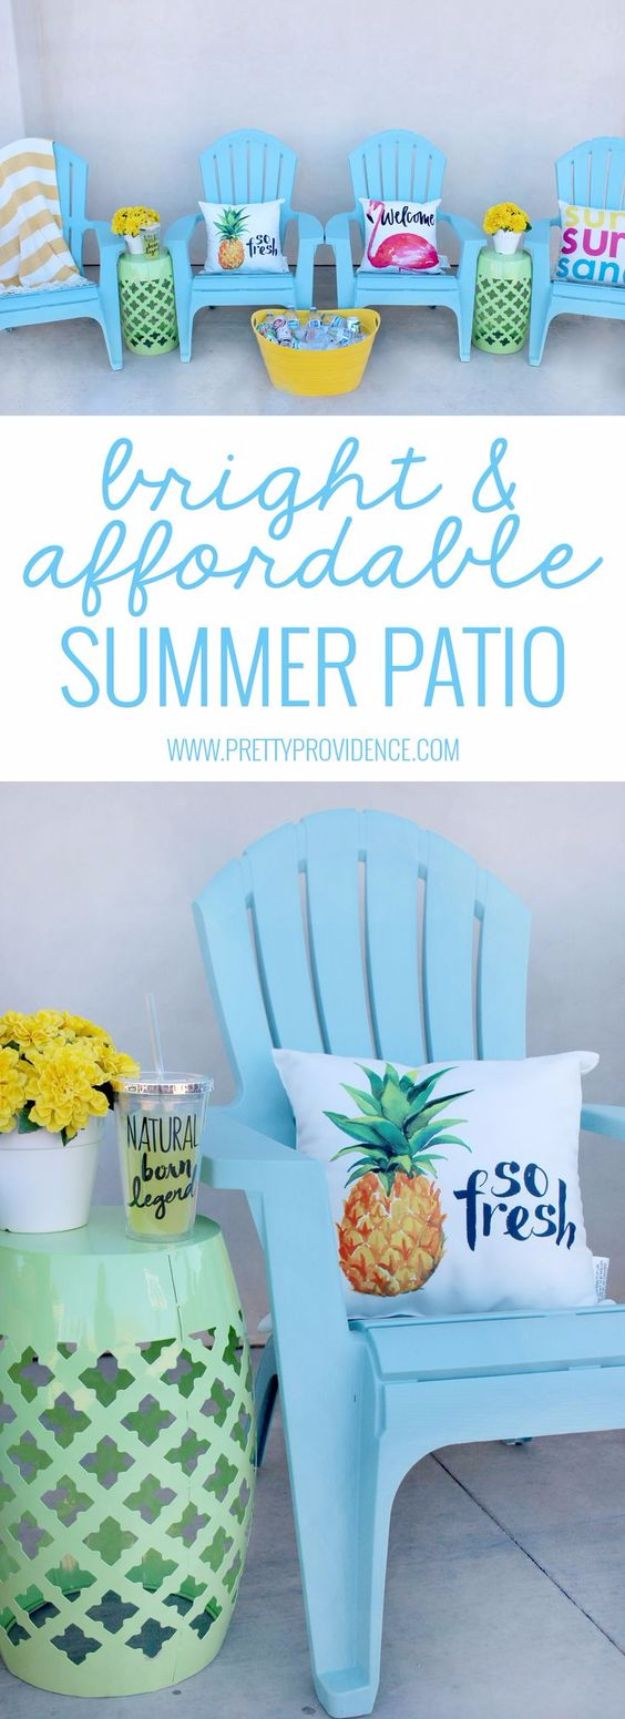 DIY Porch and Patio Ideas - Bright And Affordable Patio - Decor Projects and Furniture Tutorials You Can Build for the Outdoors - Lights and Lighting, Mason Jar Crafts, Rocking Chairs, Wreaths, Swings, Bench, Cushions, Chairs, Daybeds and Pallet Signs http://diyjoy.com/diy-porch-patio-decor